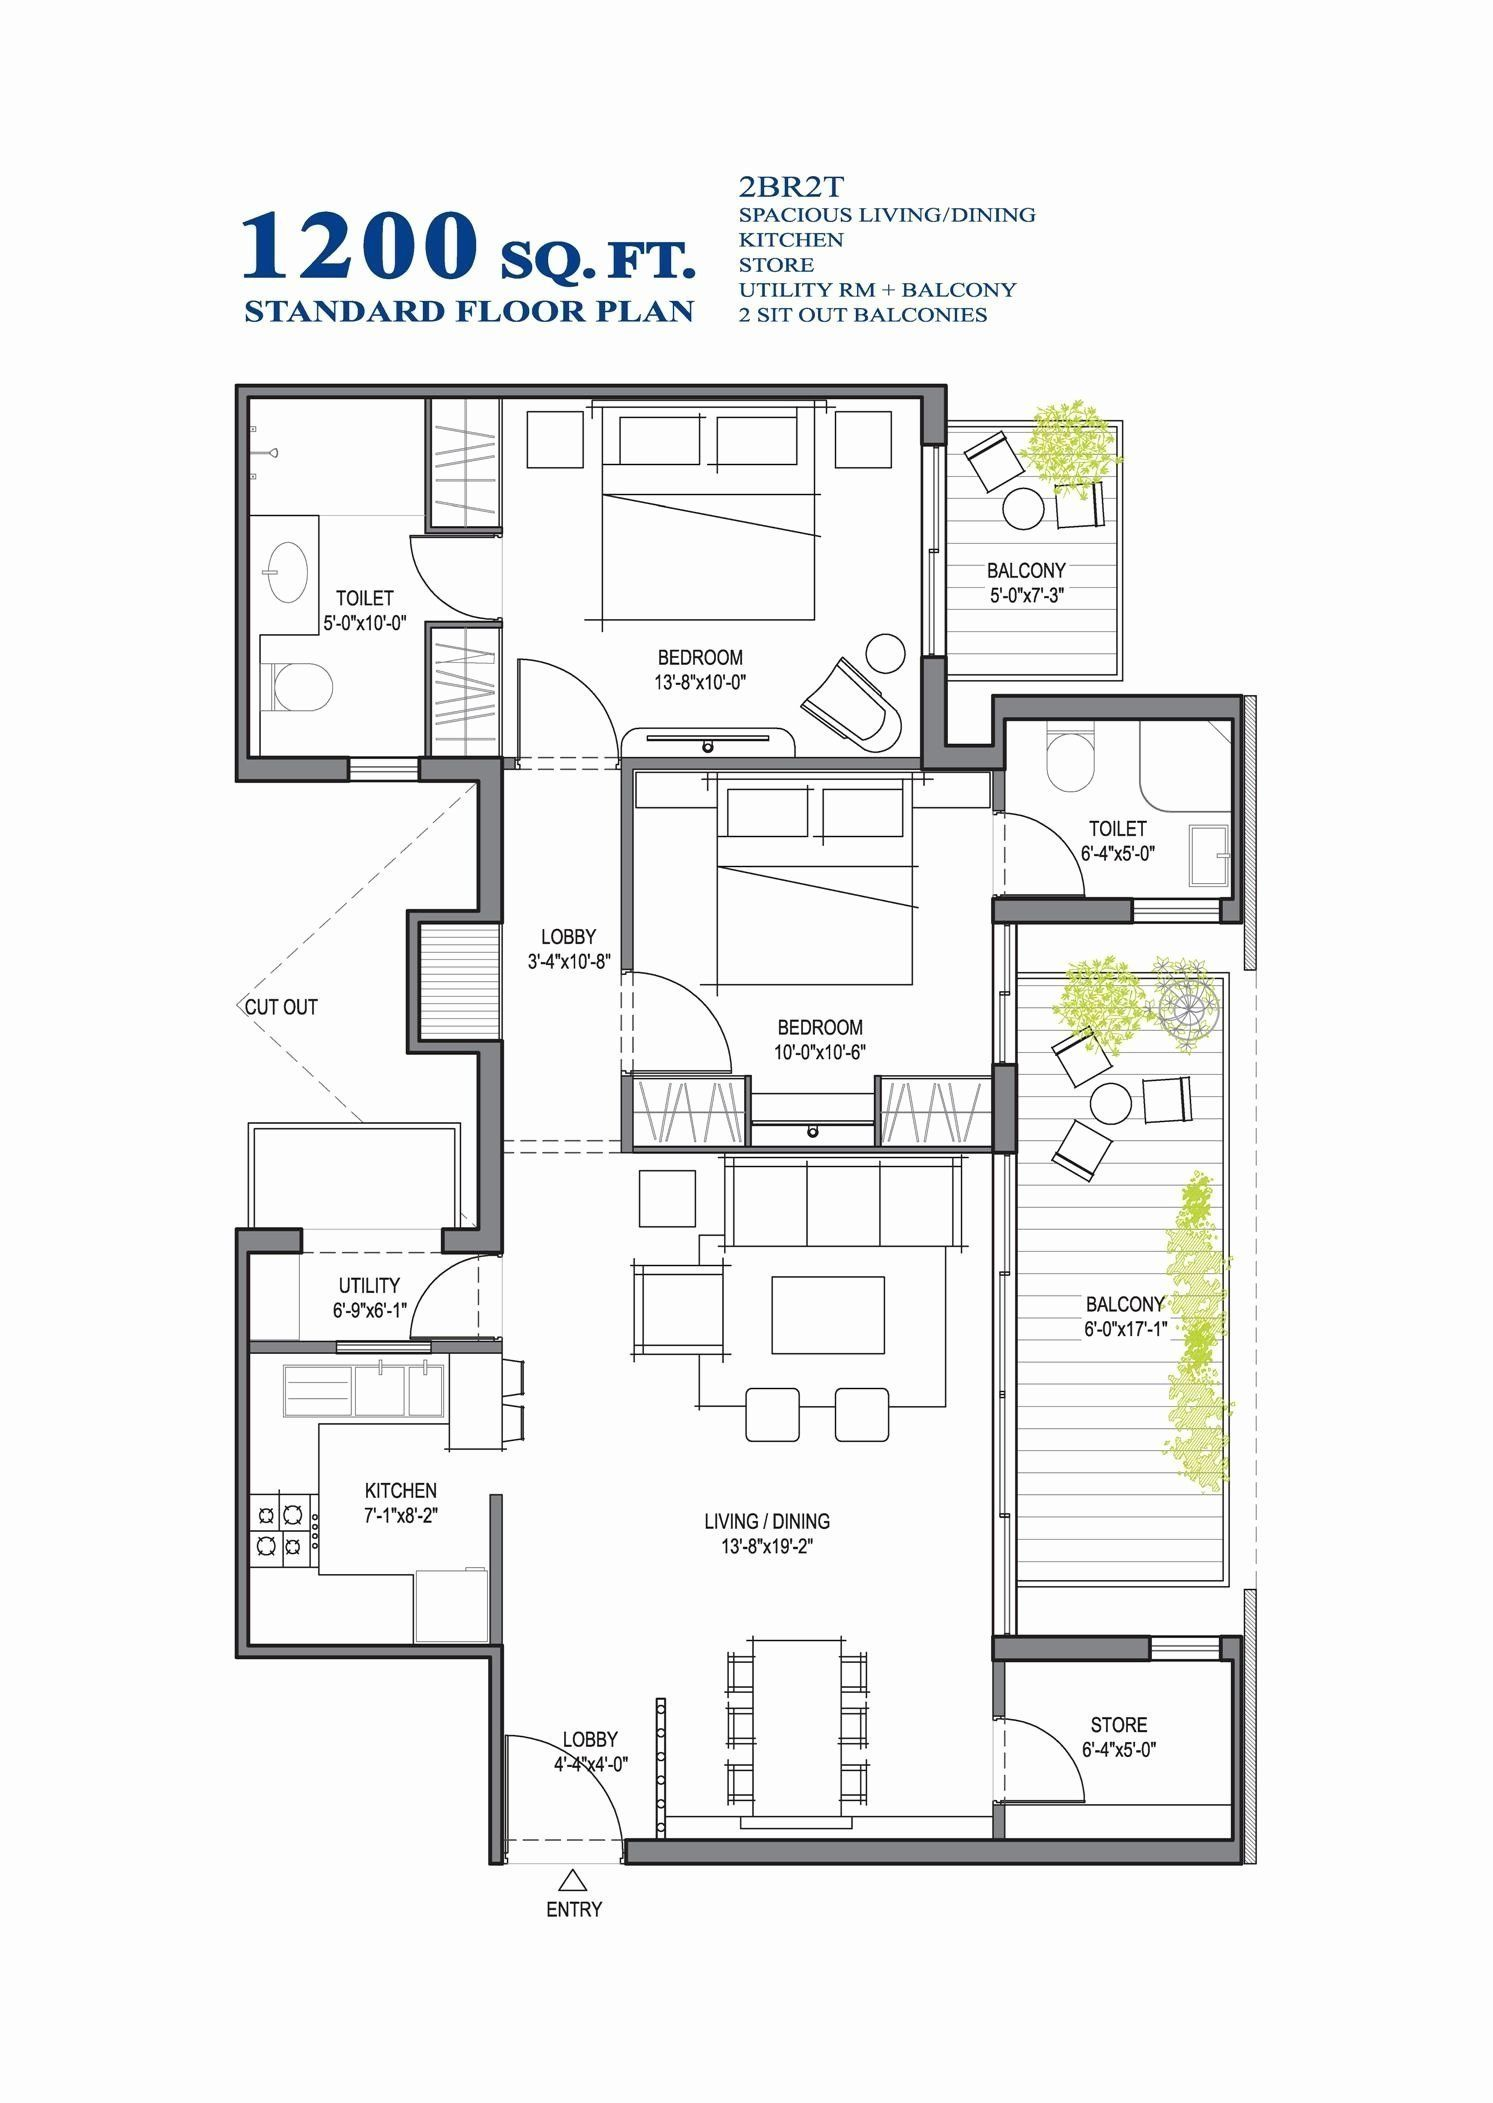 1200 Square Feet Home Design Fresh Small House Floor Plans 1000 To 1200 Sq Ft In 2020 Modern House Floor Plans Basement House Plans Small Modern House Plans